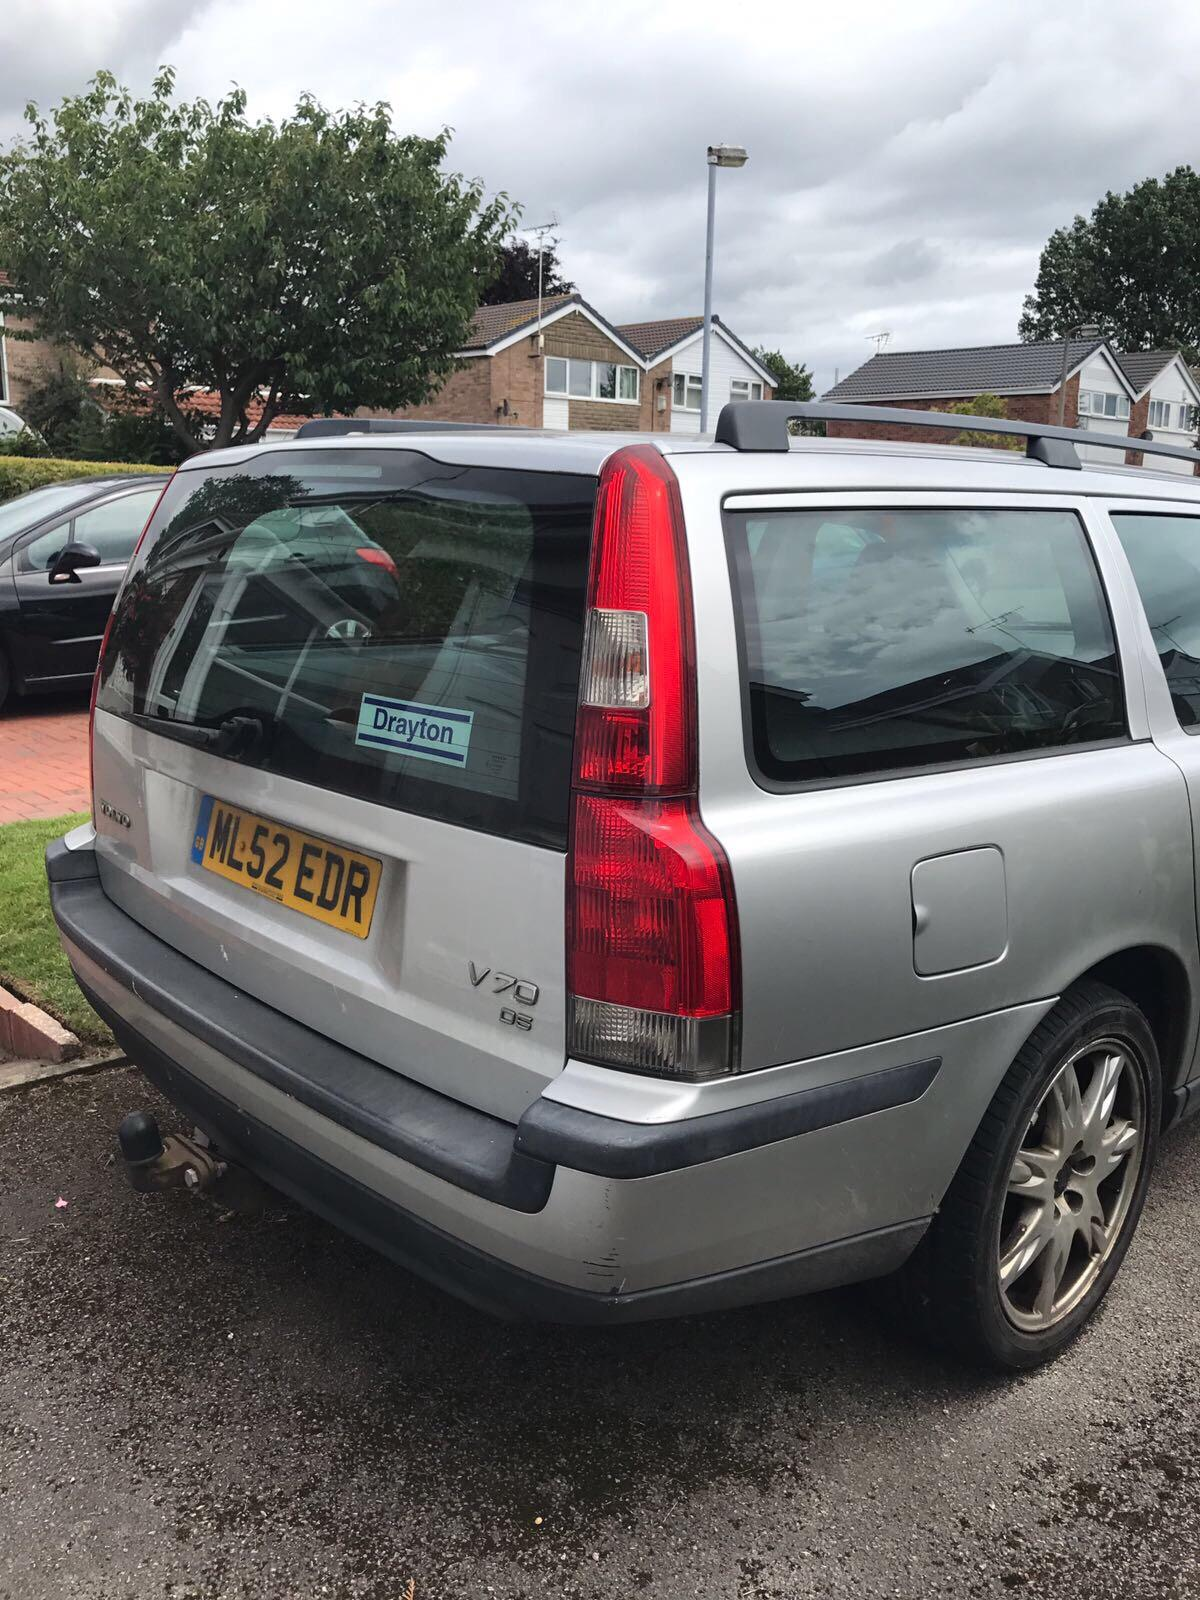 Volvo V70 D5 Estate 2002 in CH4 Broughton for £650 00 for